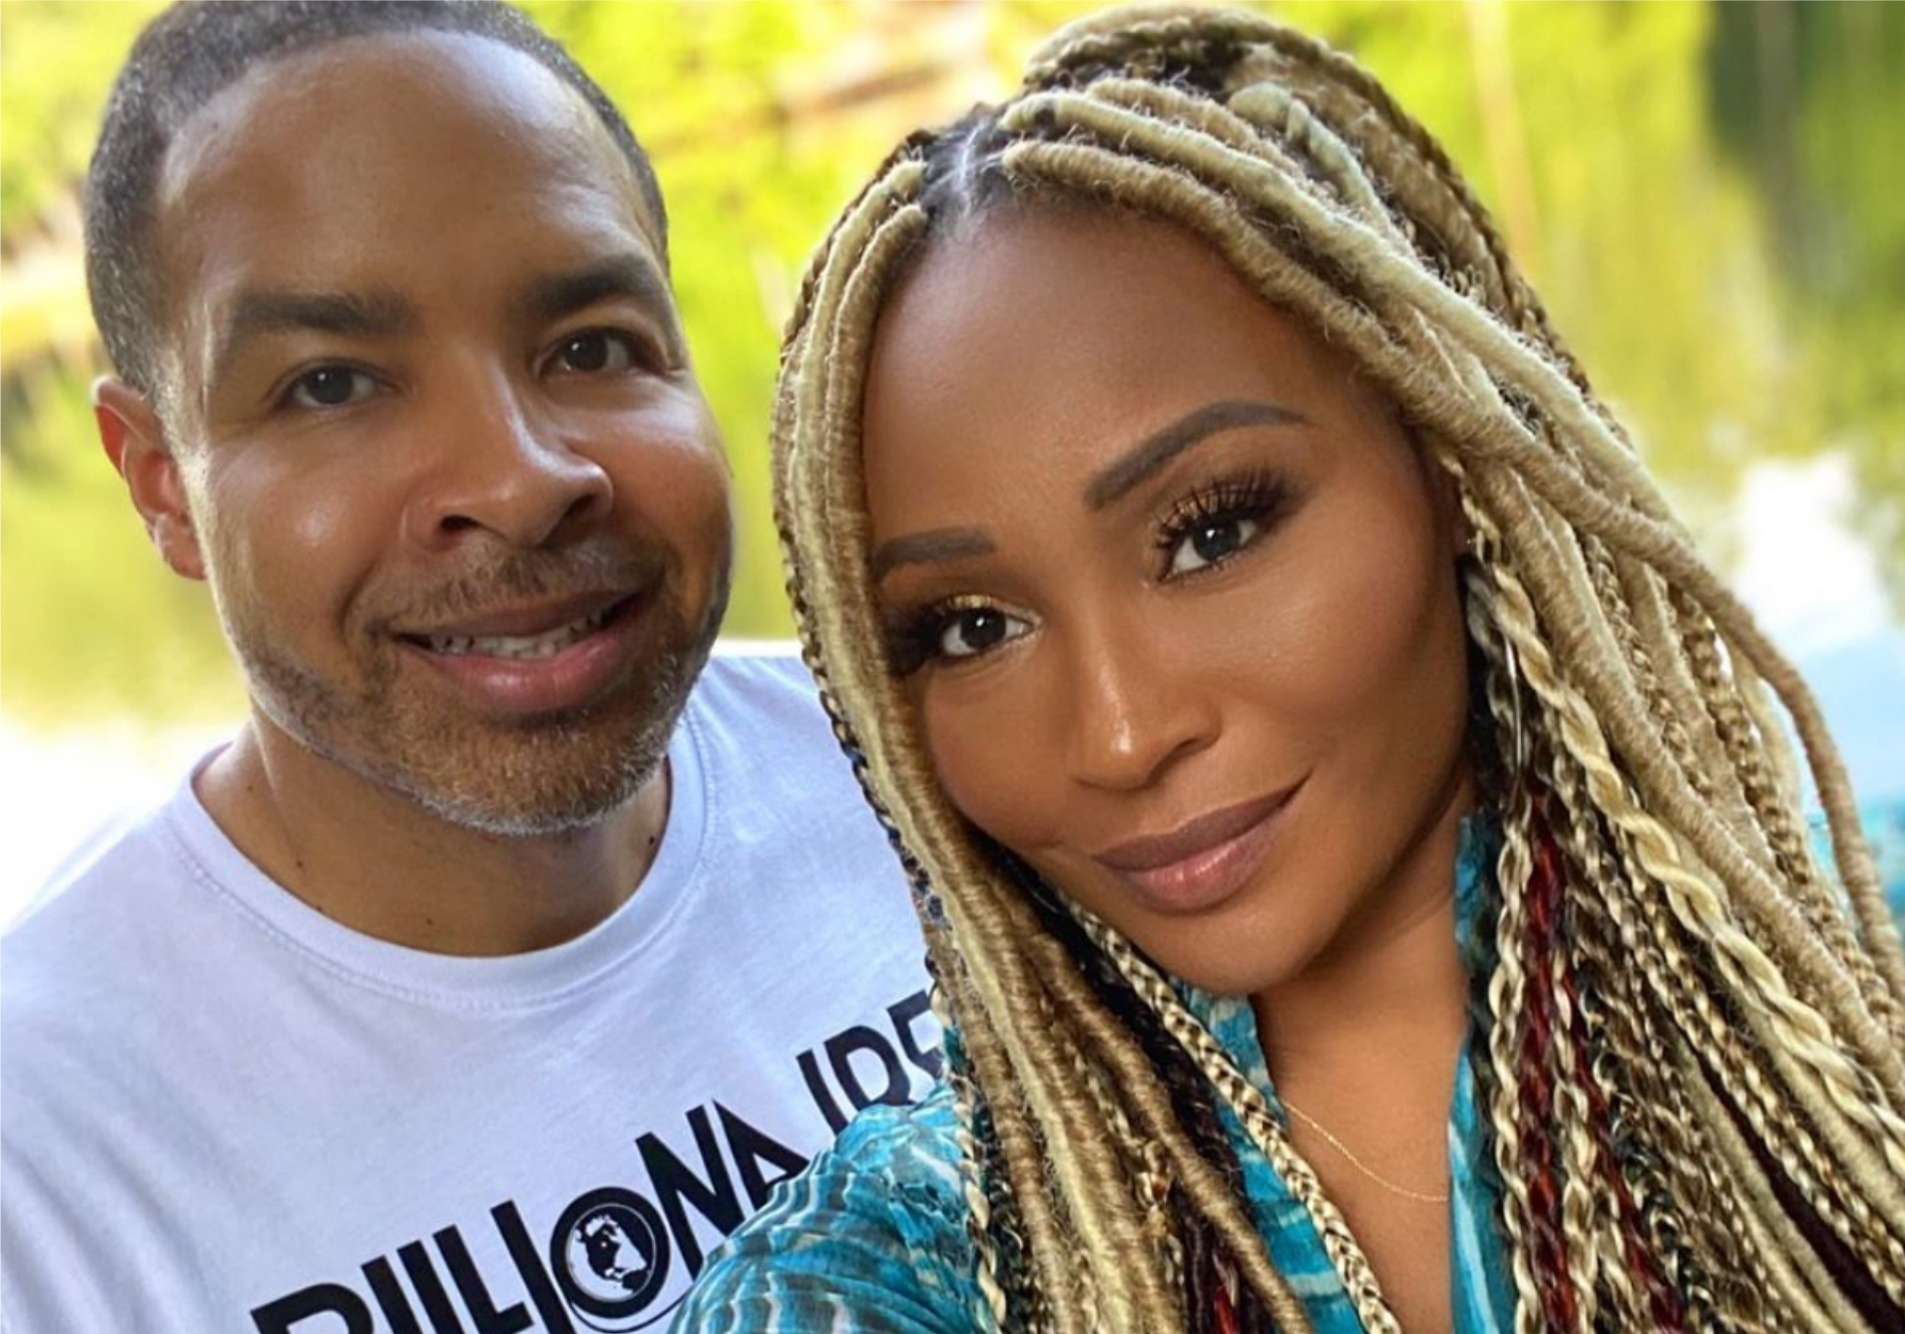 Cynthia Bailey Shares One Of Her Favorite Photos – Check Out What Impressed Fans